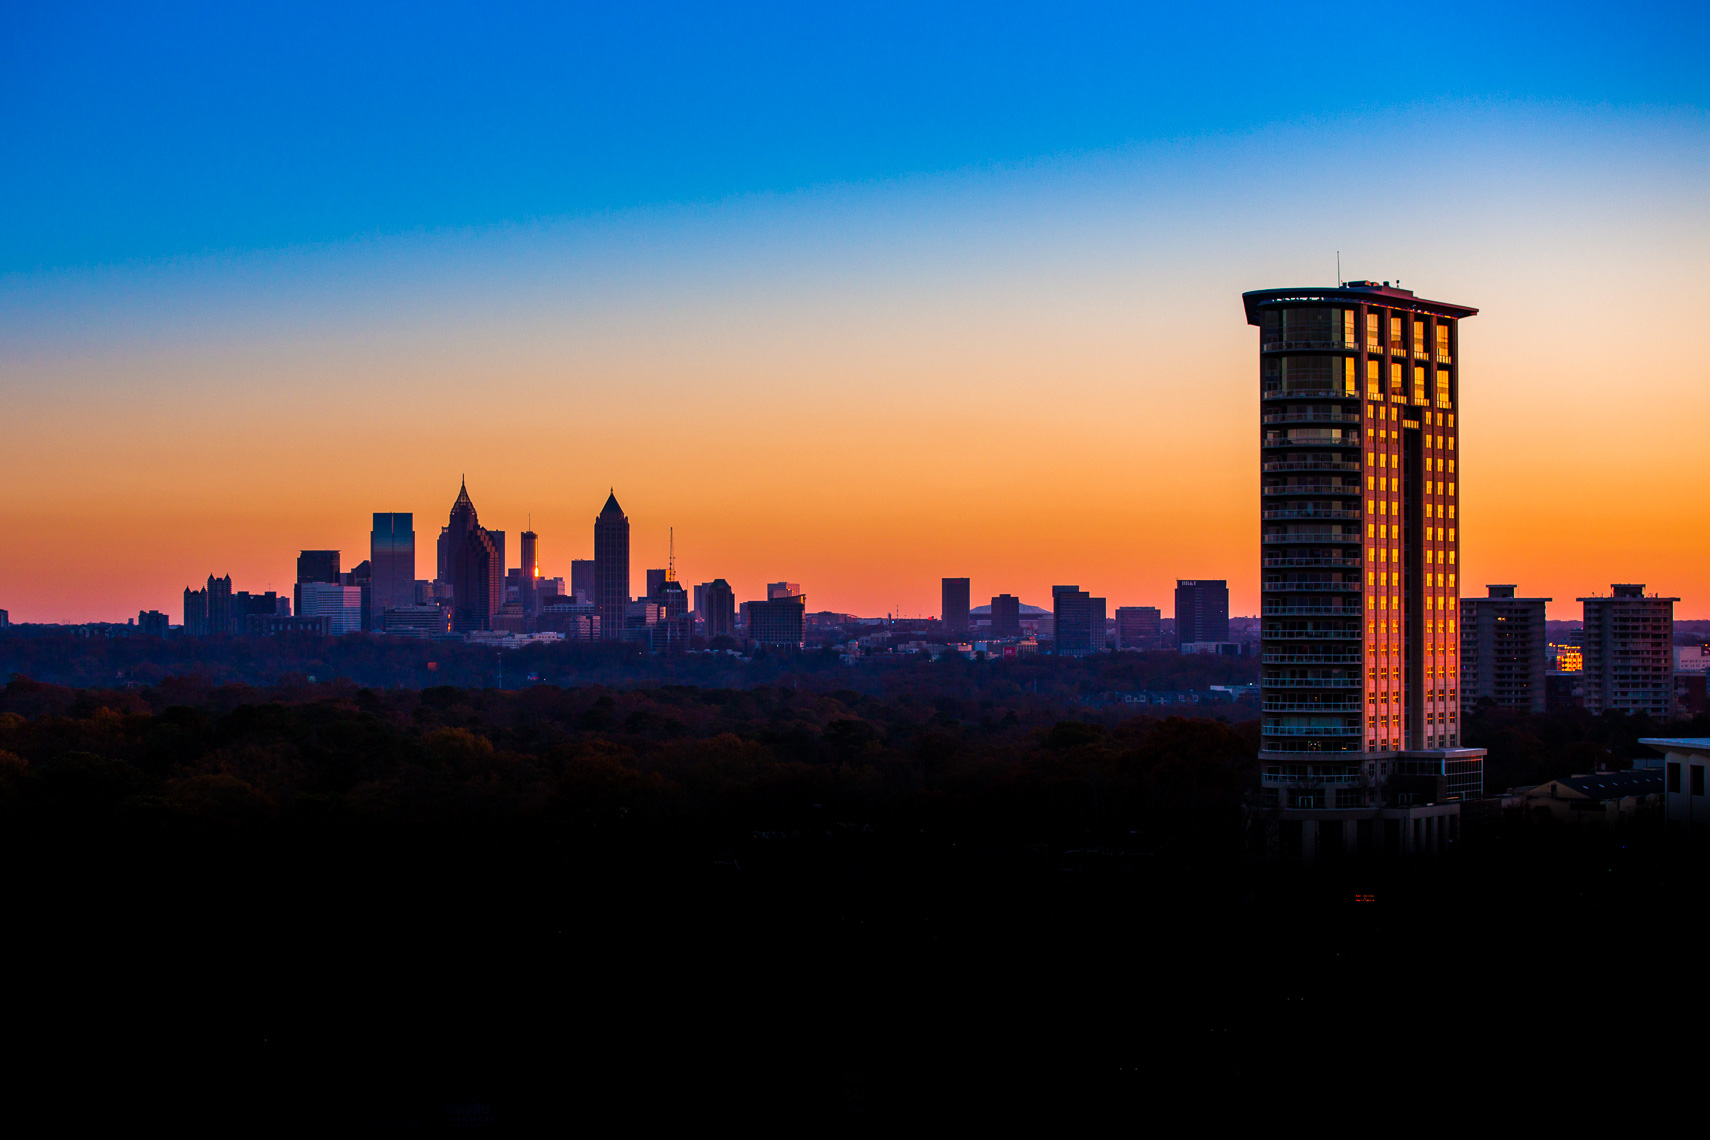 Atlanta Architectural Photography at Dusk